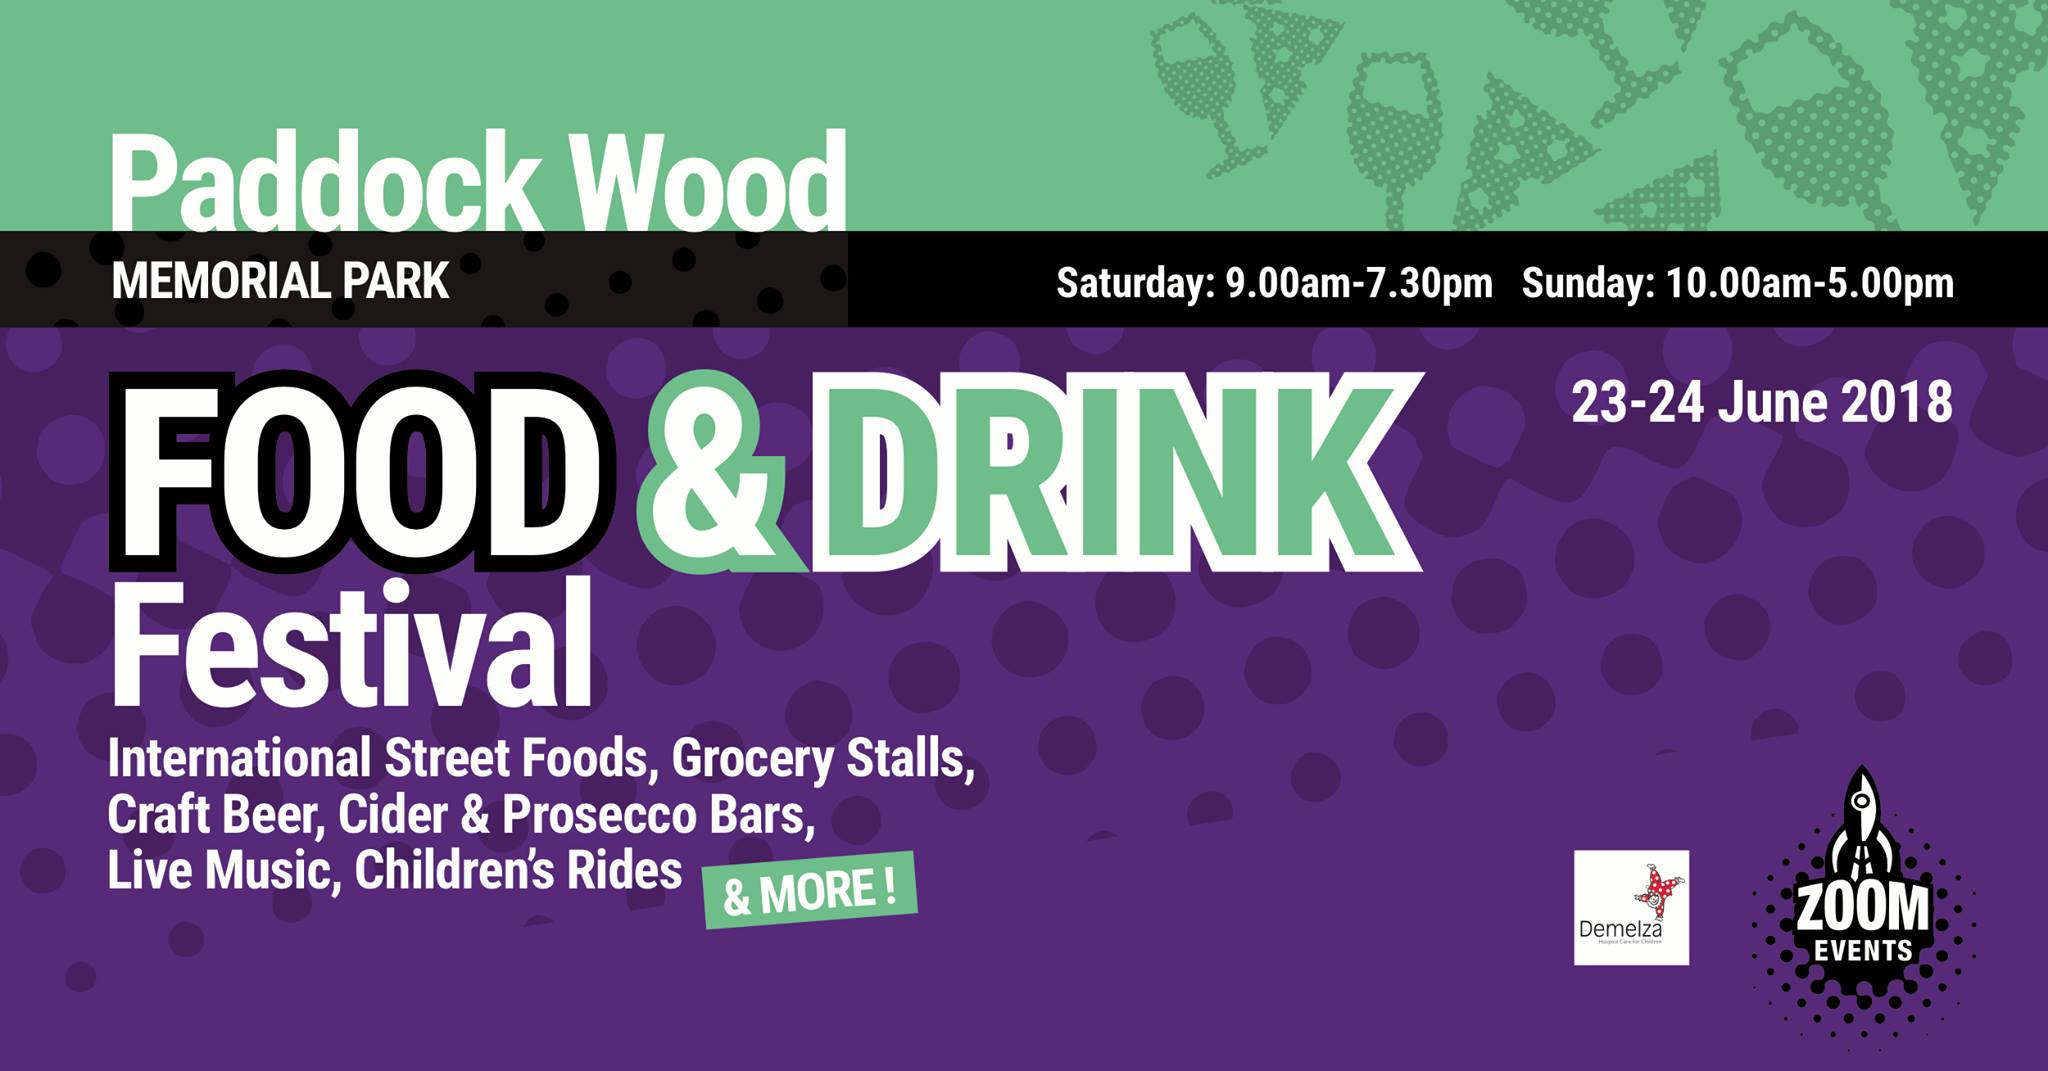 M&M will be playing 2 45 minute sets at Paddock Wood Food & Drink Festival from 2pm - 4pm.